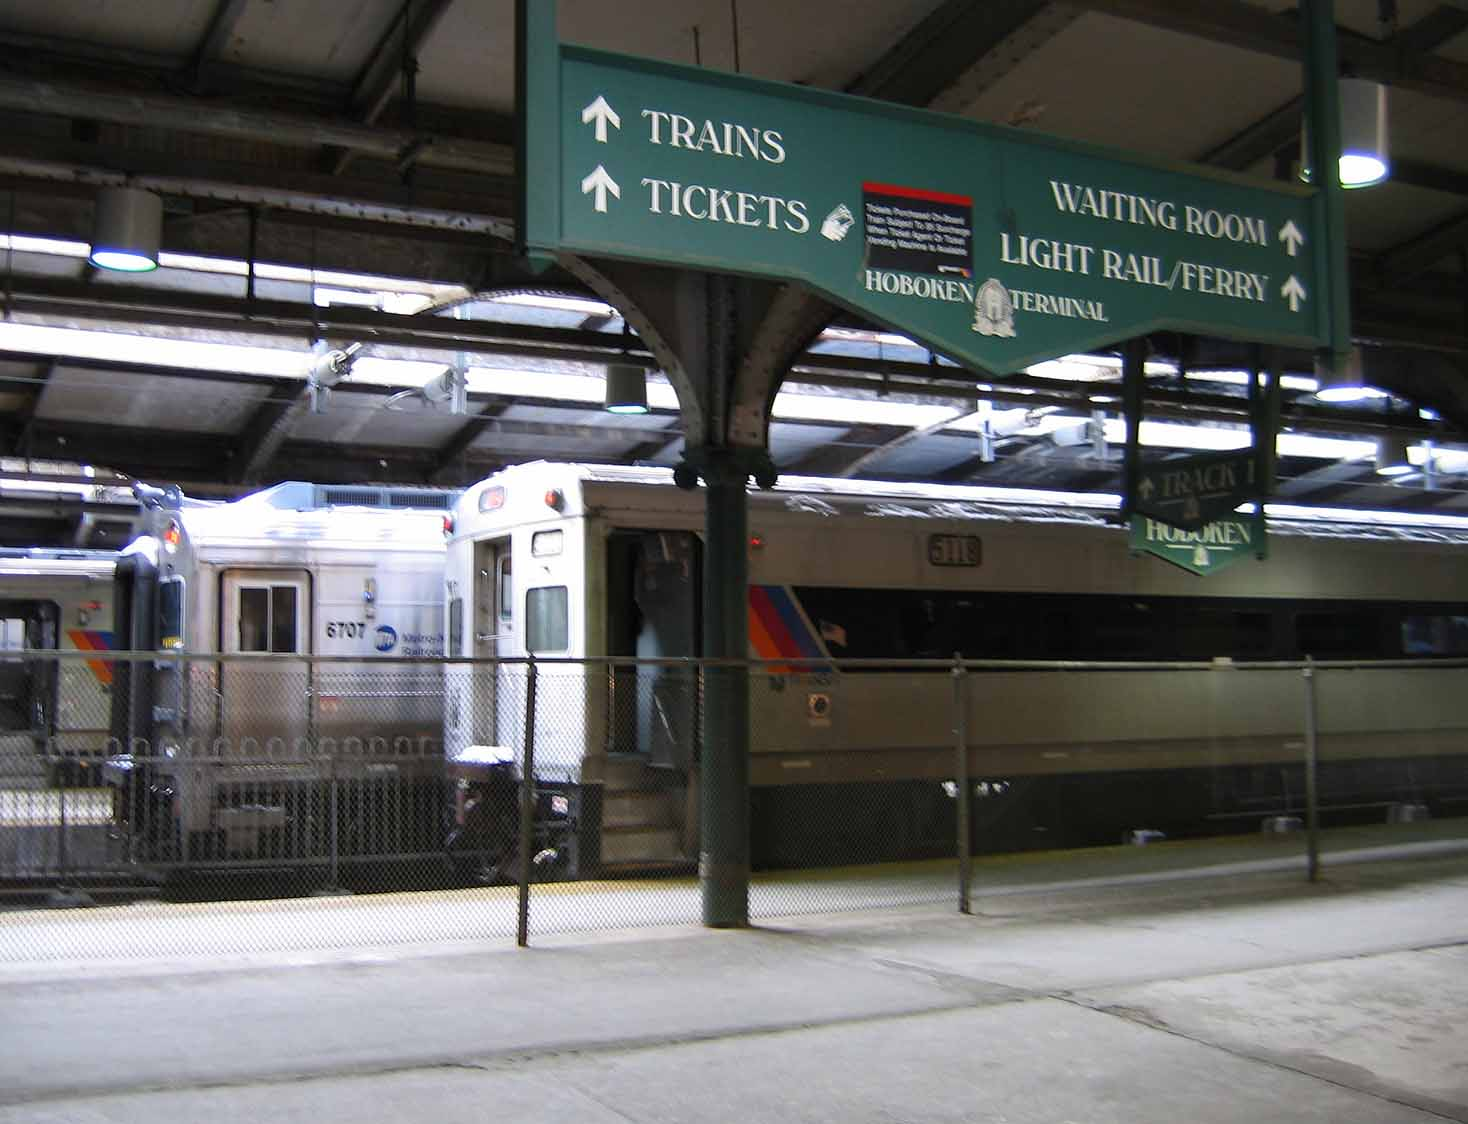 Hoboken terminal in New Jersey